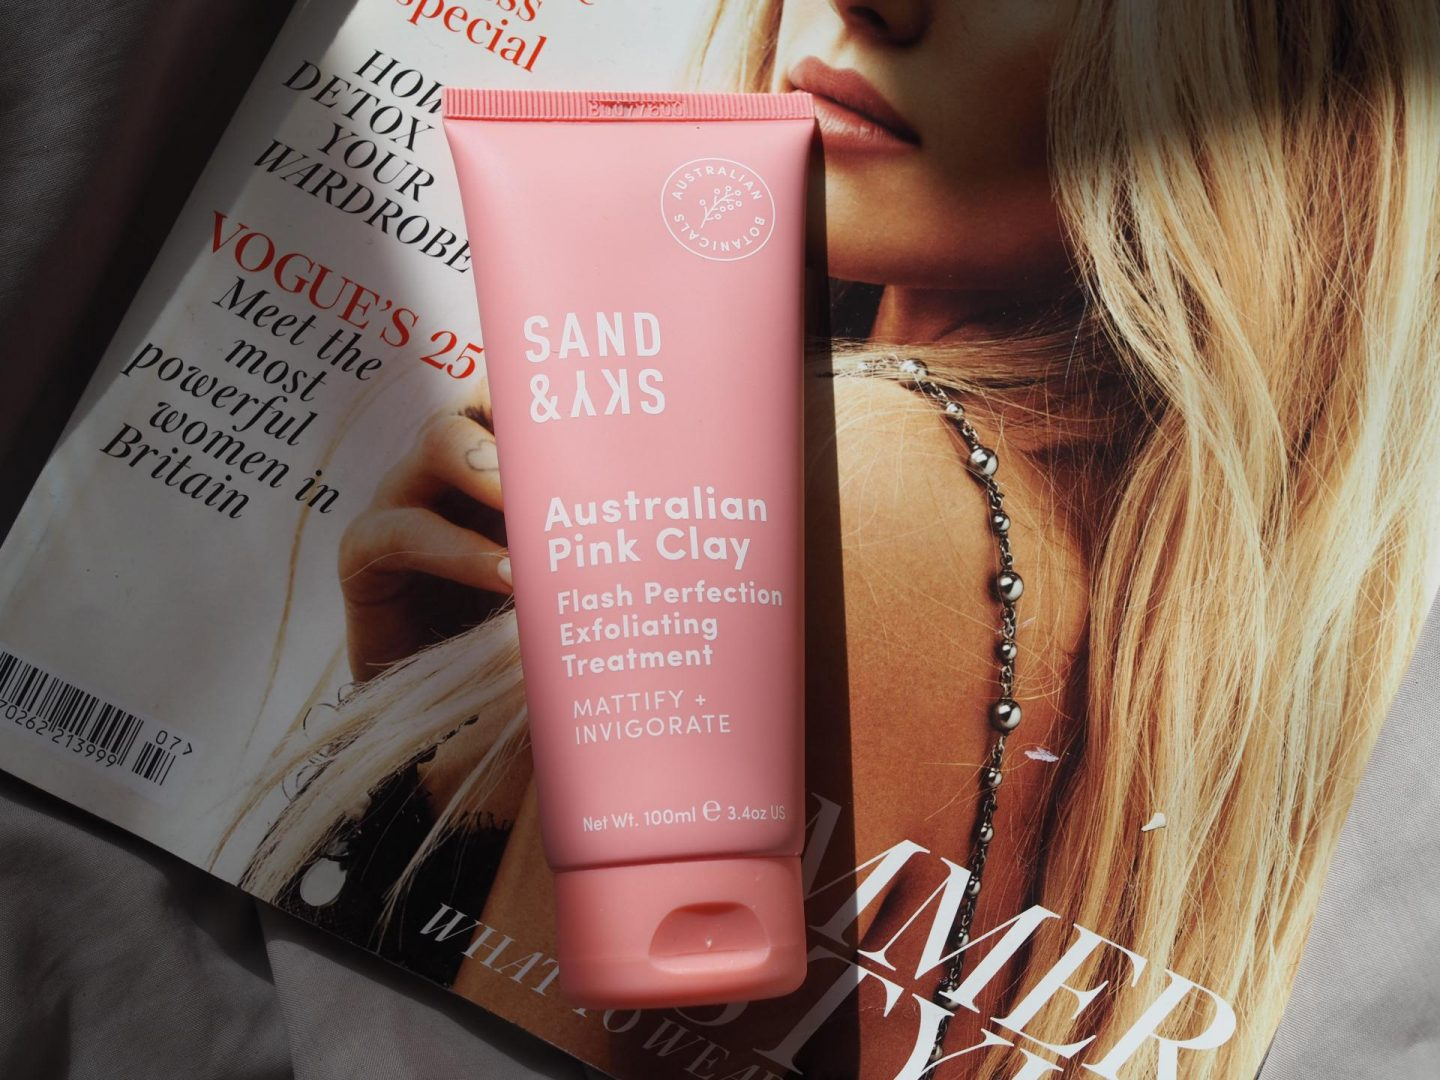 Sand & Sky Australian Pink Clay Flash Perfection Exfoliating Treatment